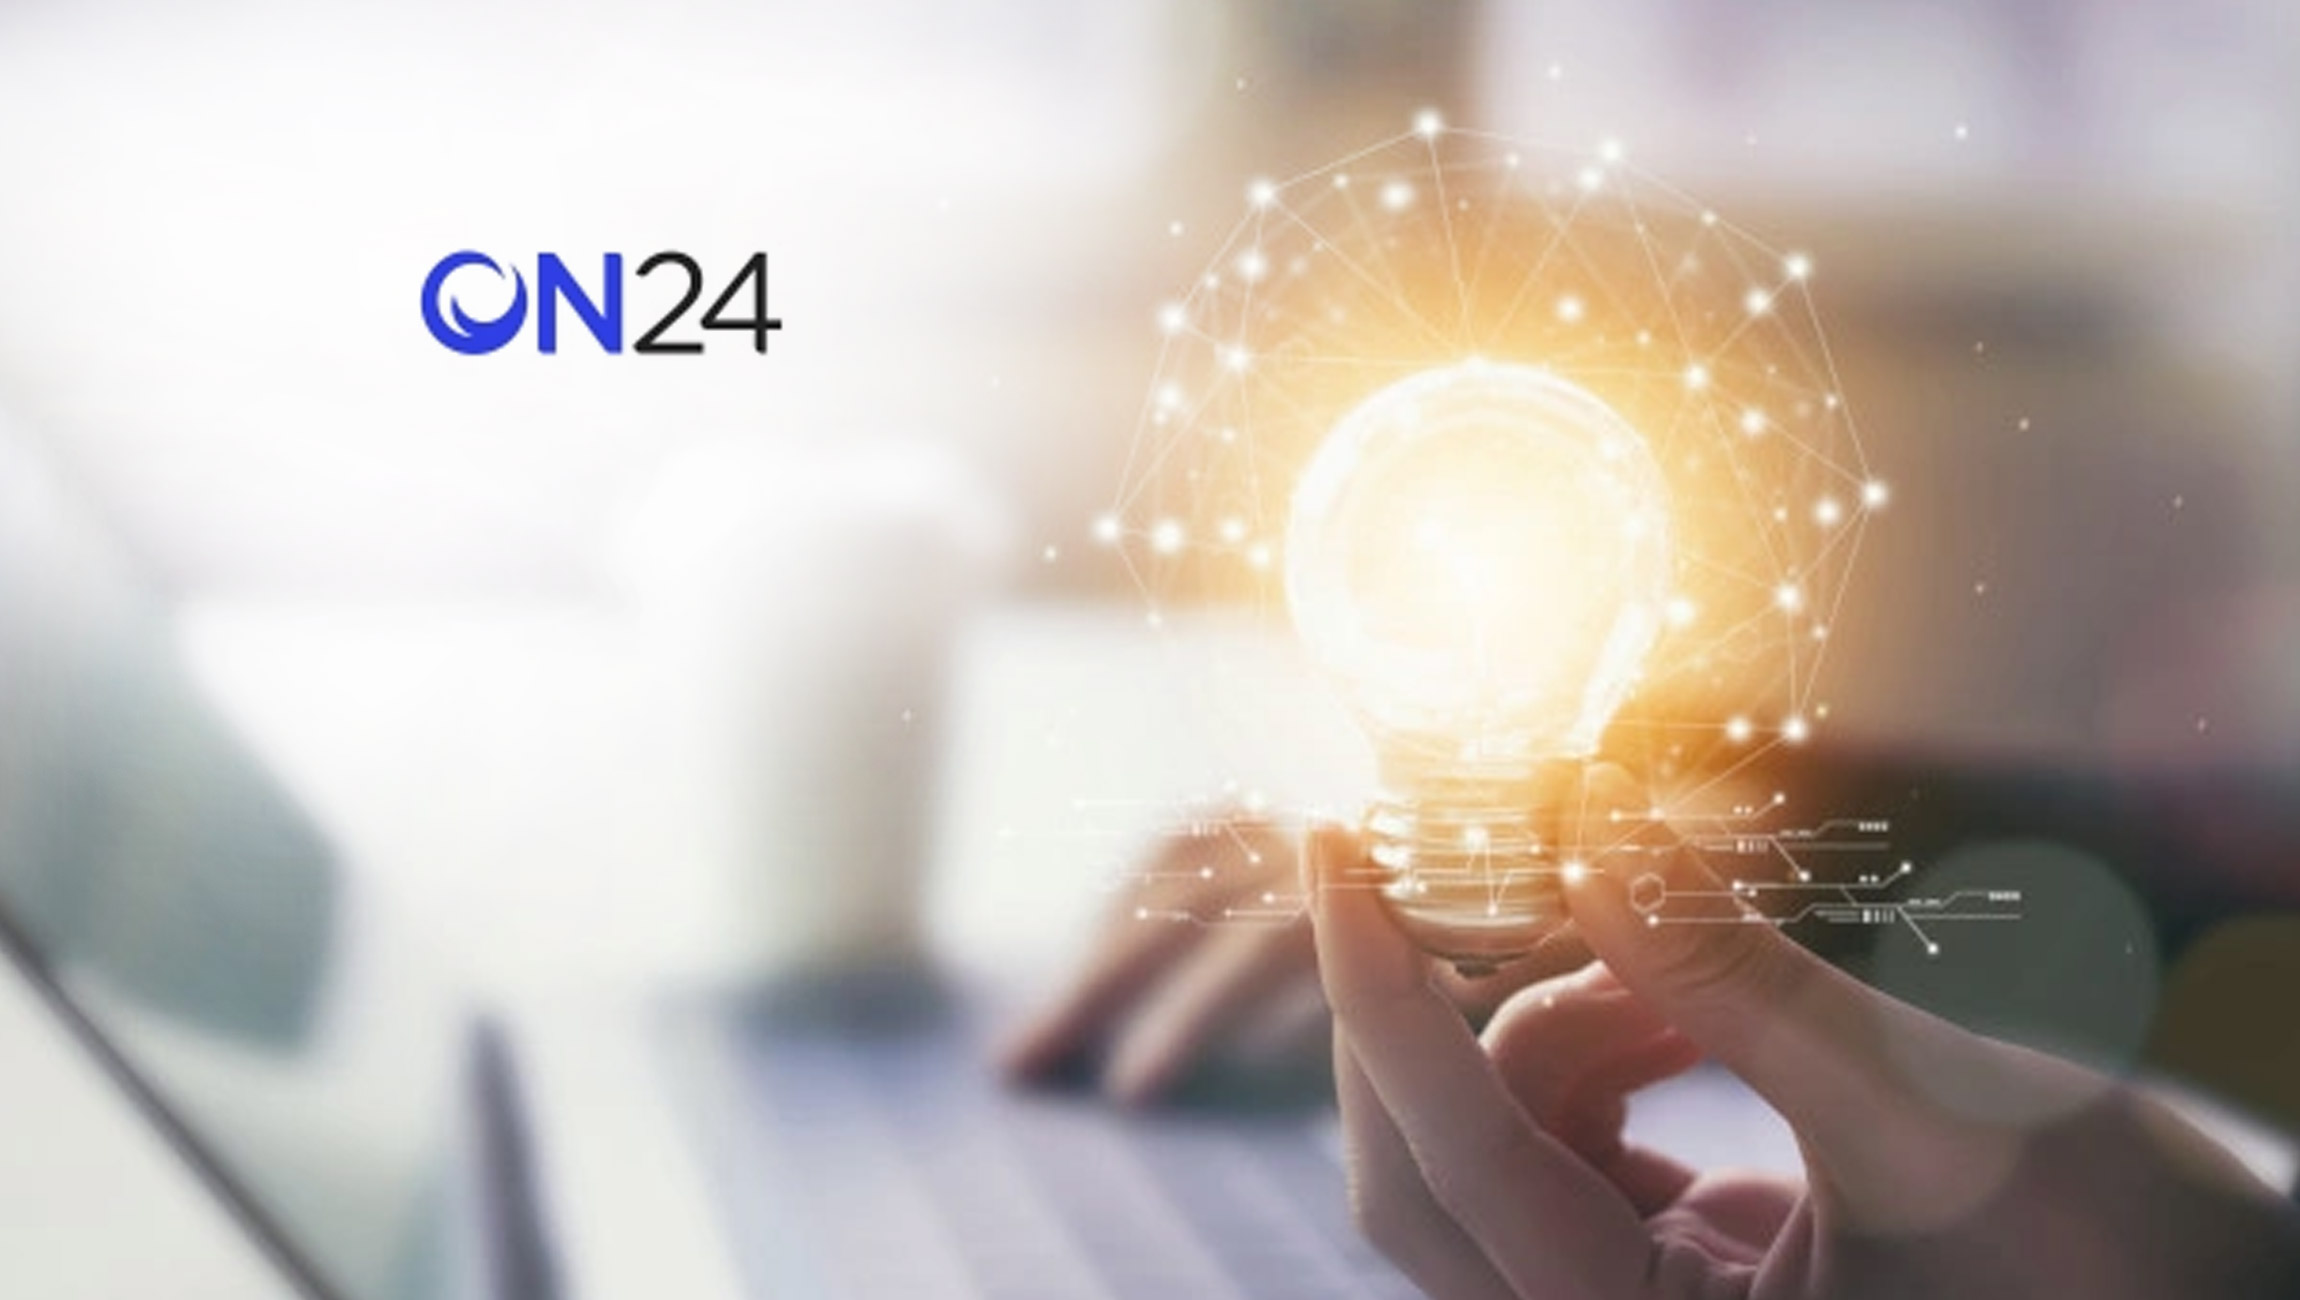 ON24 Center for Marketing Transformation Provides Exclusive Insights to Maximize Digital Experiences